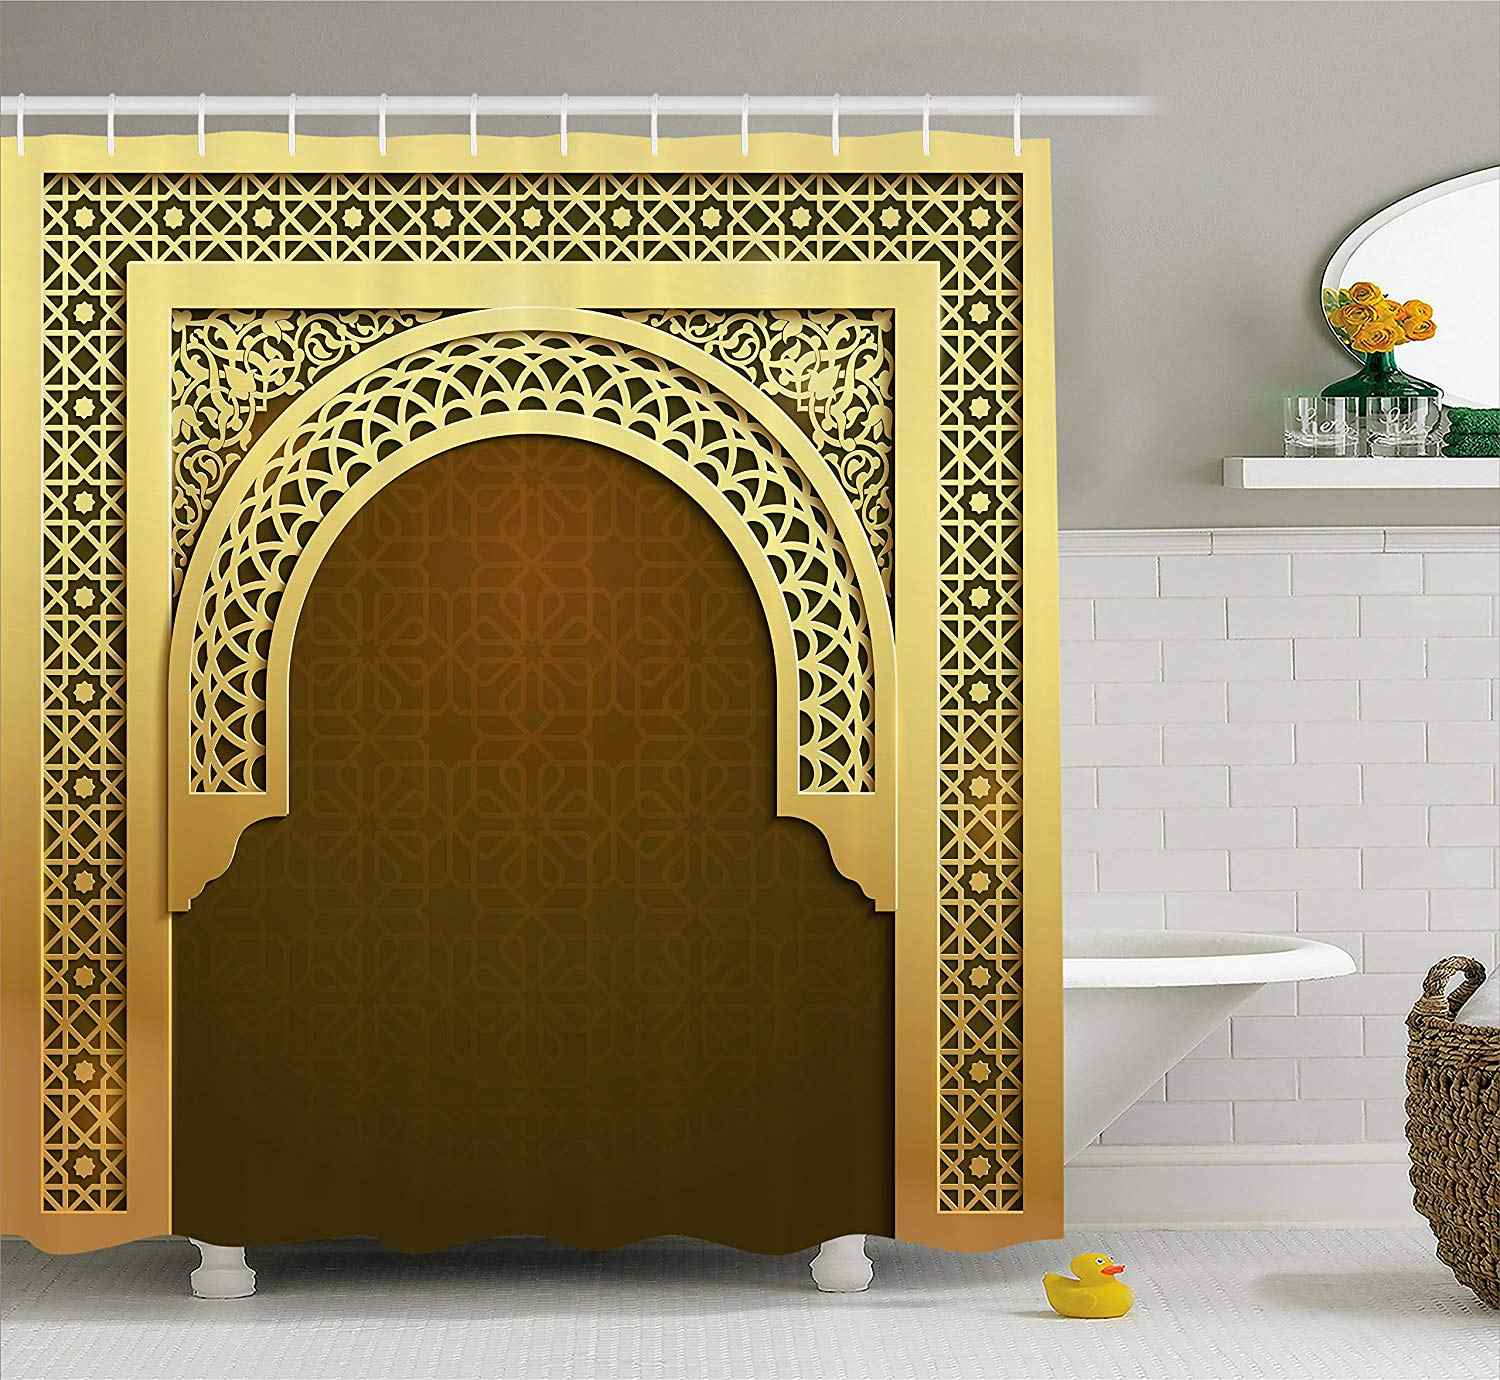 Moroccan Shower Curtain Middle Eastern Culture Greeting Scroll Arch Figure Celebration Religious Theme Fabric Bathroom Decor